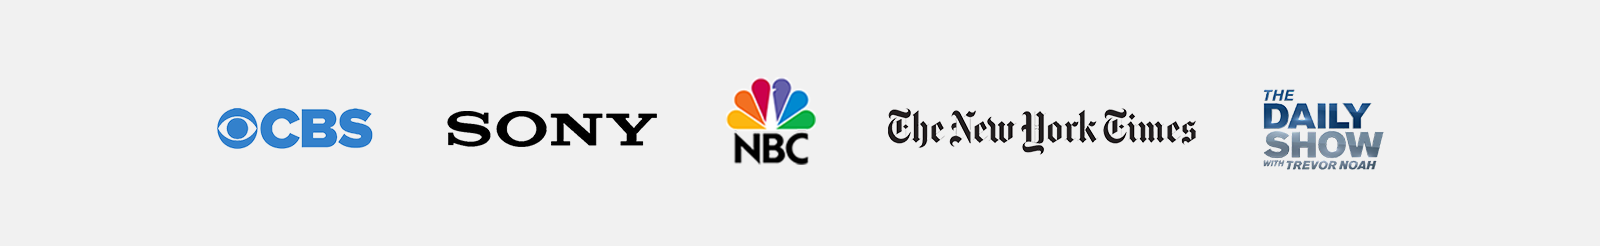 prosound is trusted by cbs, ony, nbc, the new york times, the daily show and more